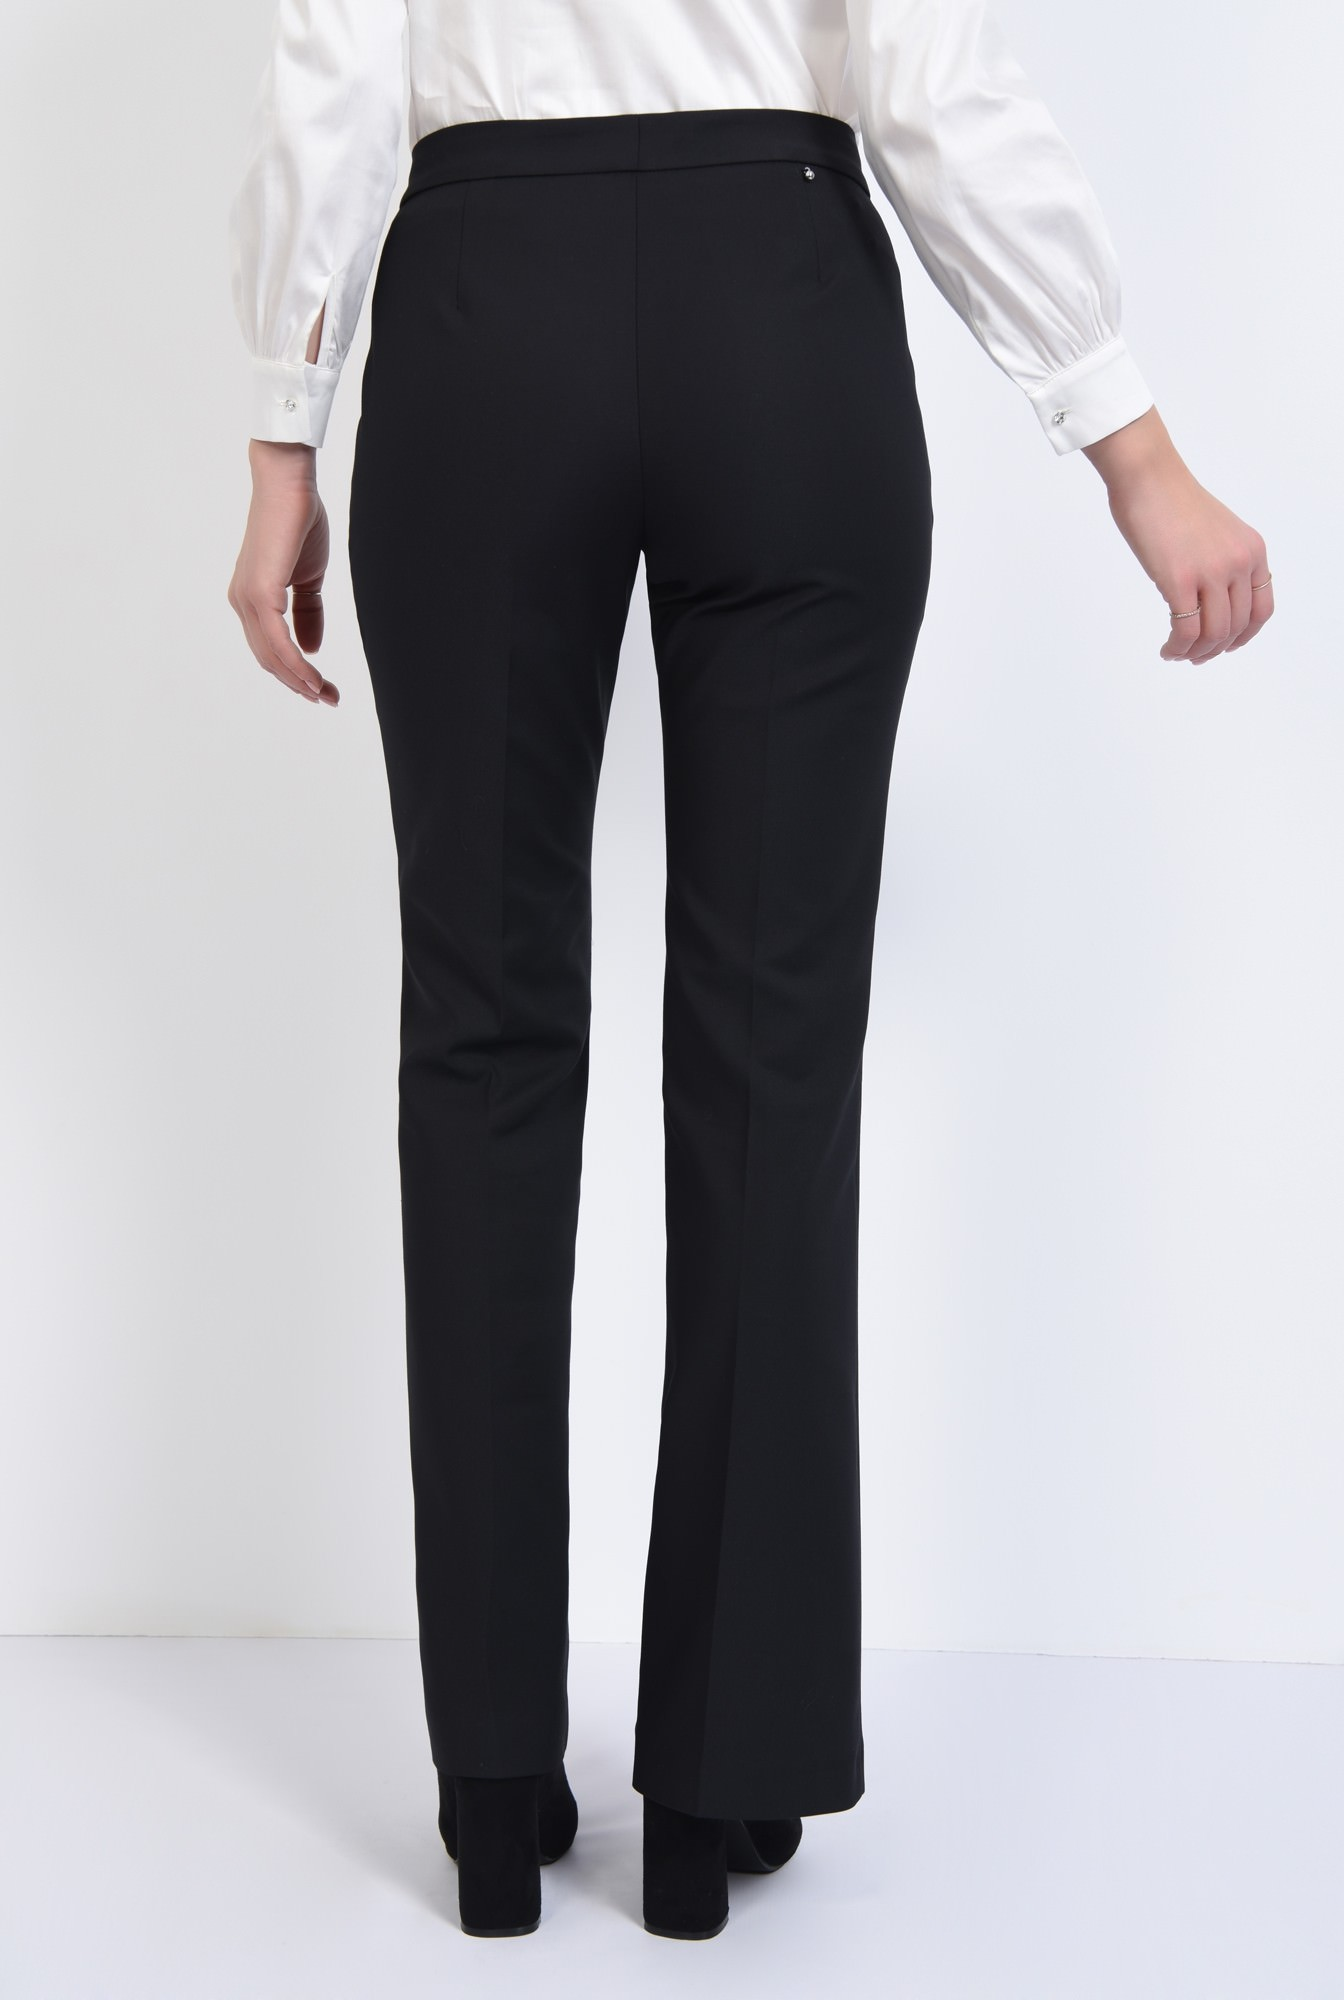 1 - PANTALON OFFICE PT 181-NEGRU